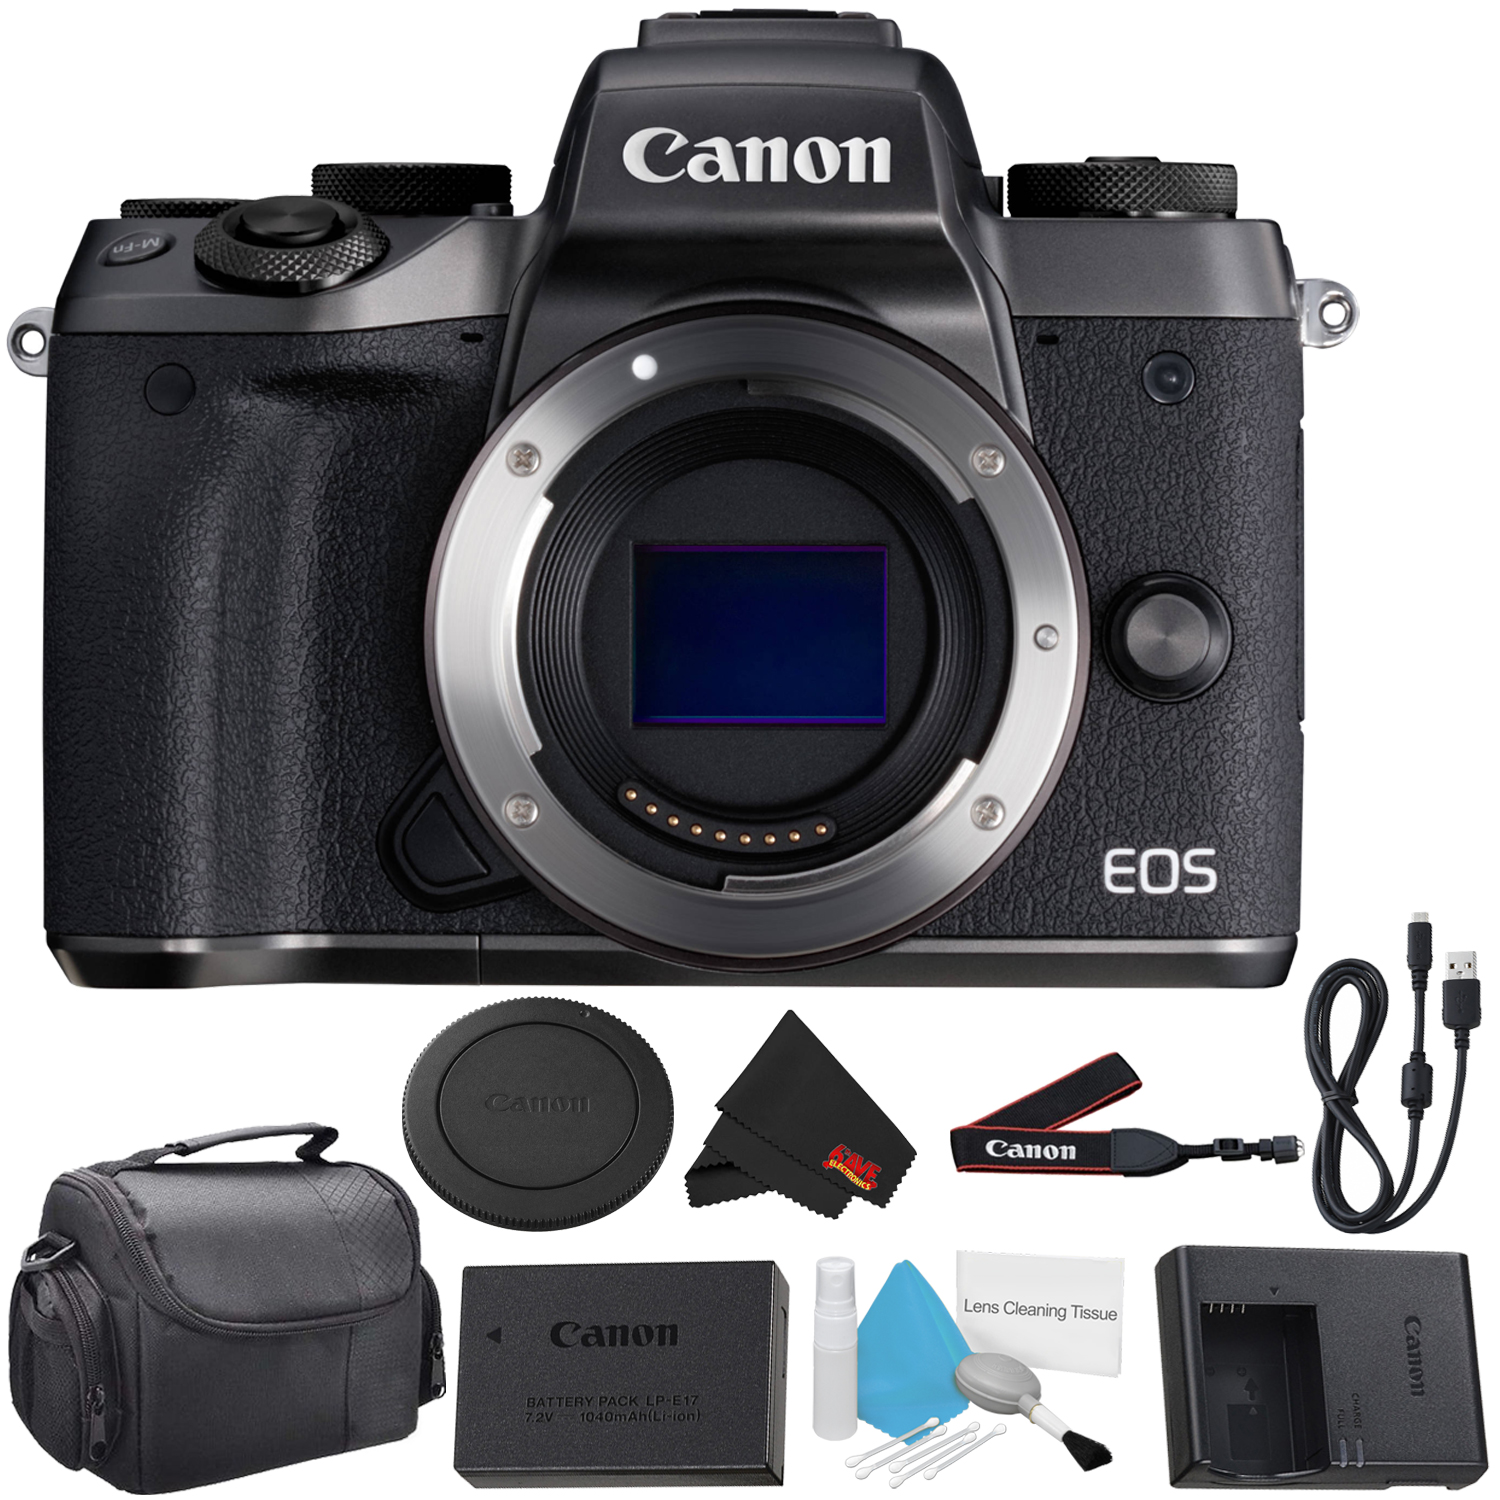 Canon EOS M5 Mirrorless Digital Camera Body - Bundle with 32GB Memory Card, Carrying Case + More (Intl Model)